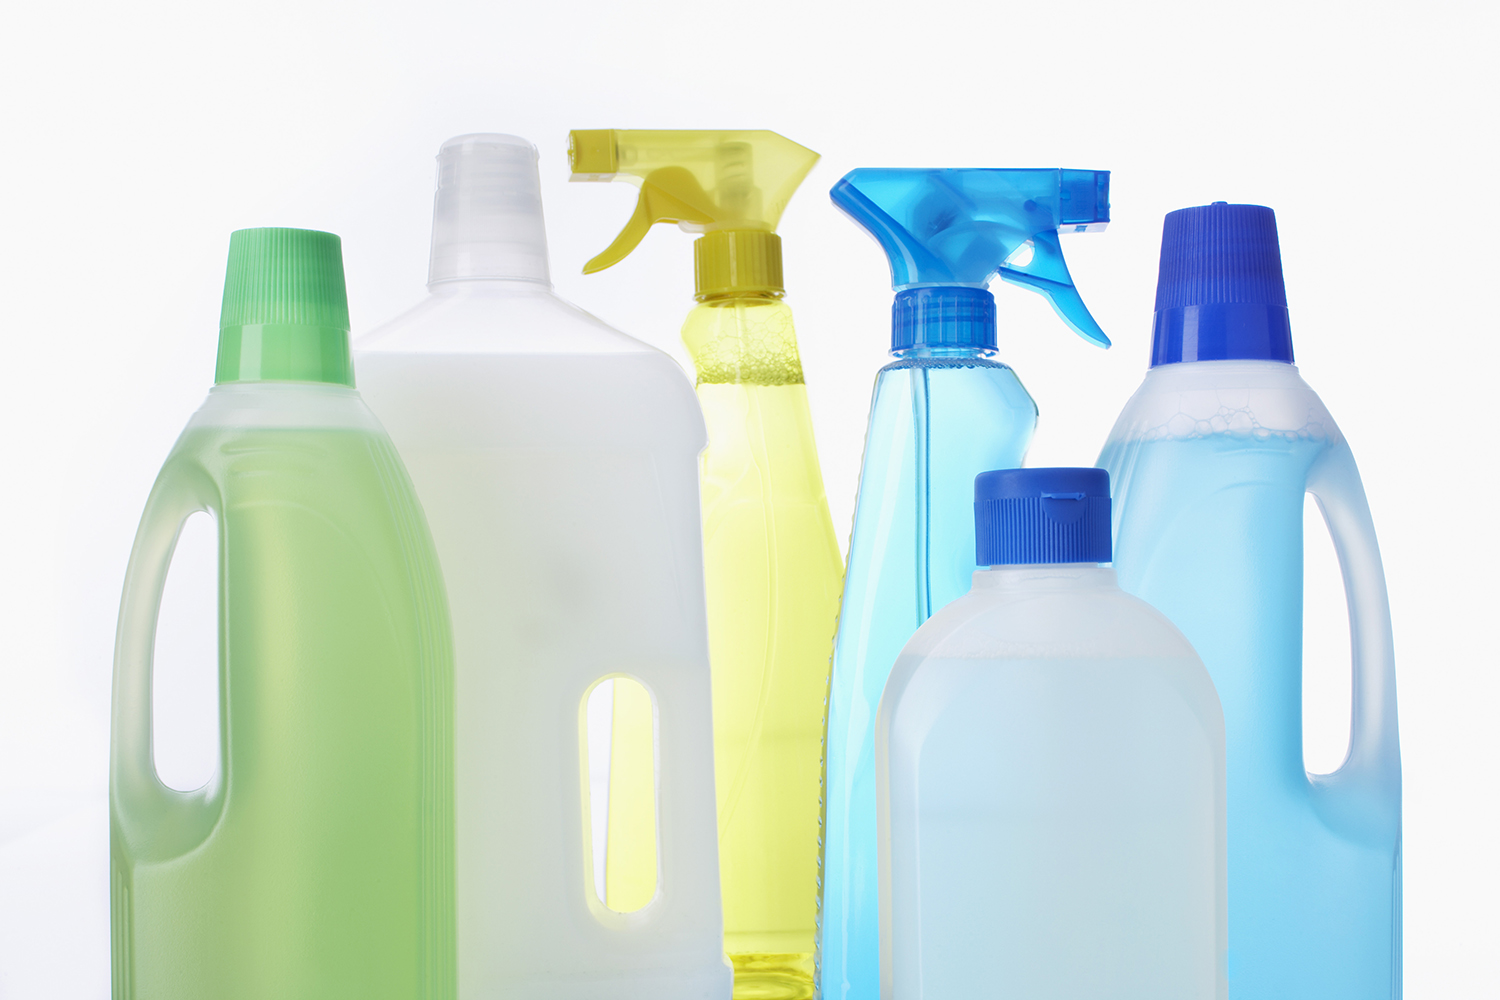 Swap Household Cleaners